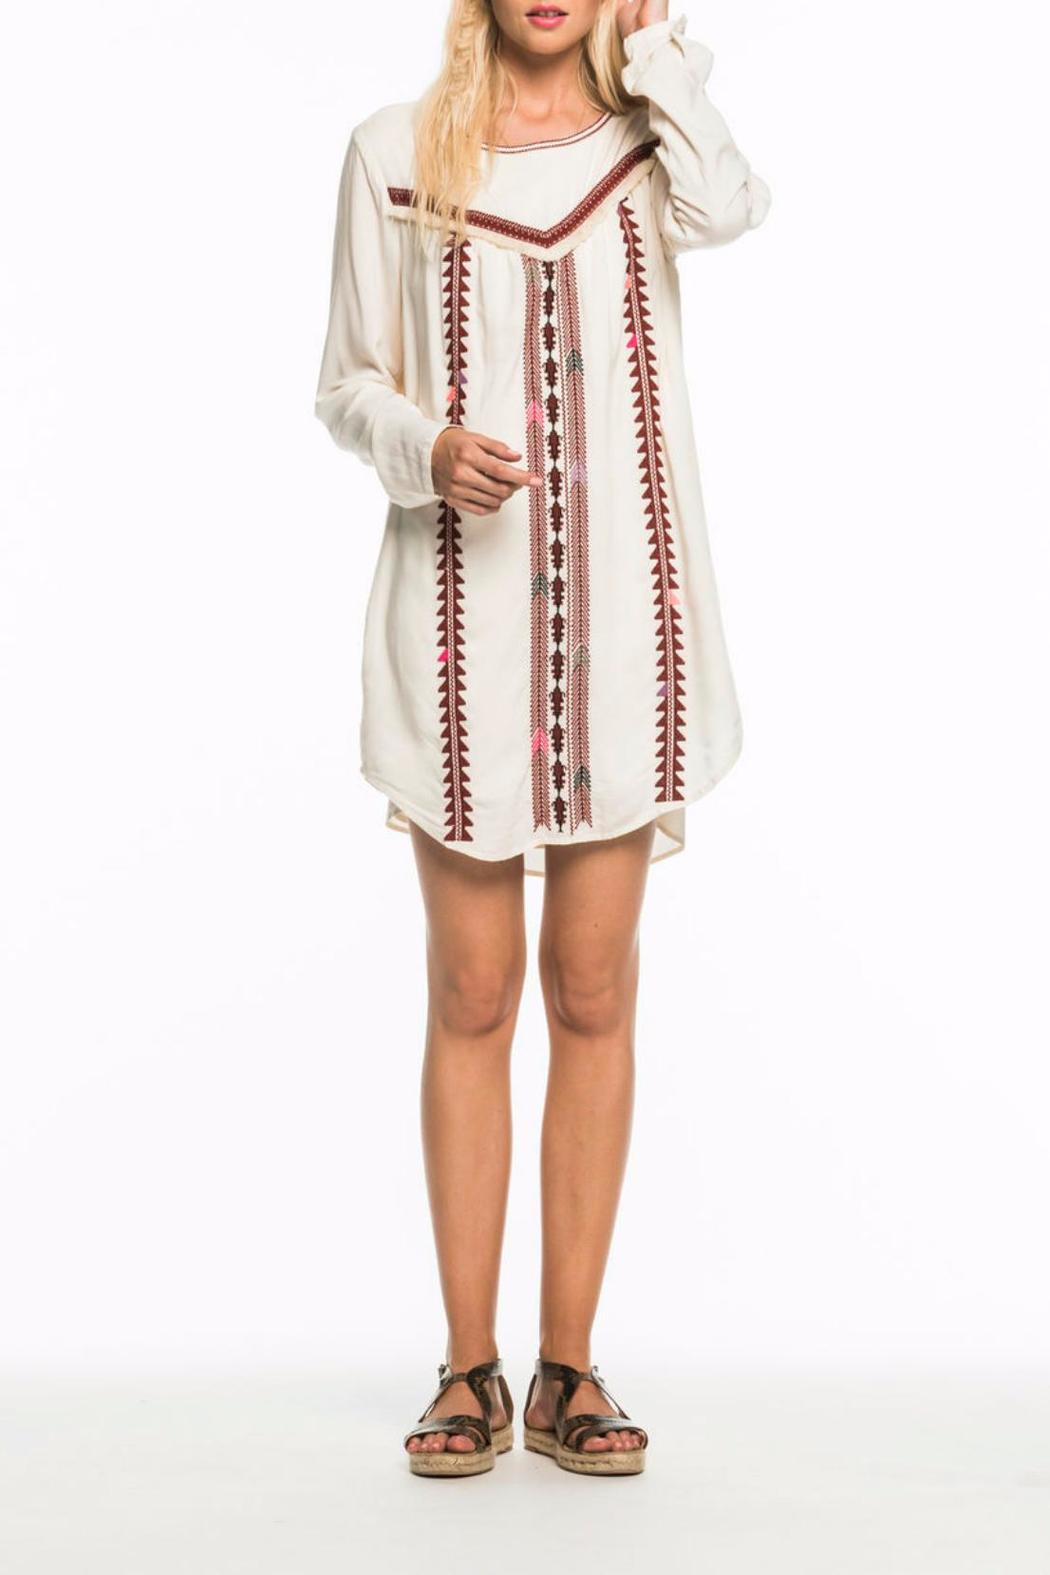 Scotch and Soda Embroidered Dress - Main Image